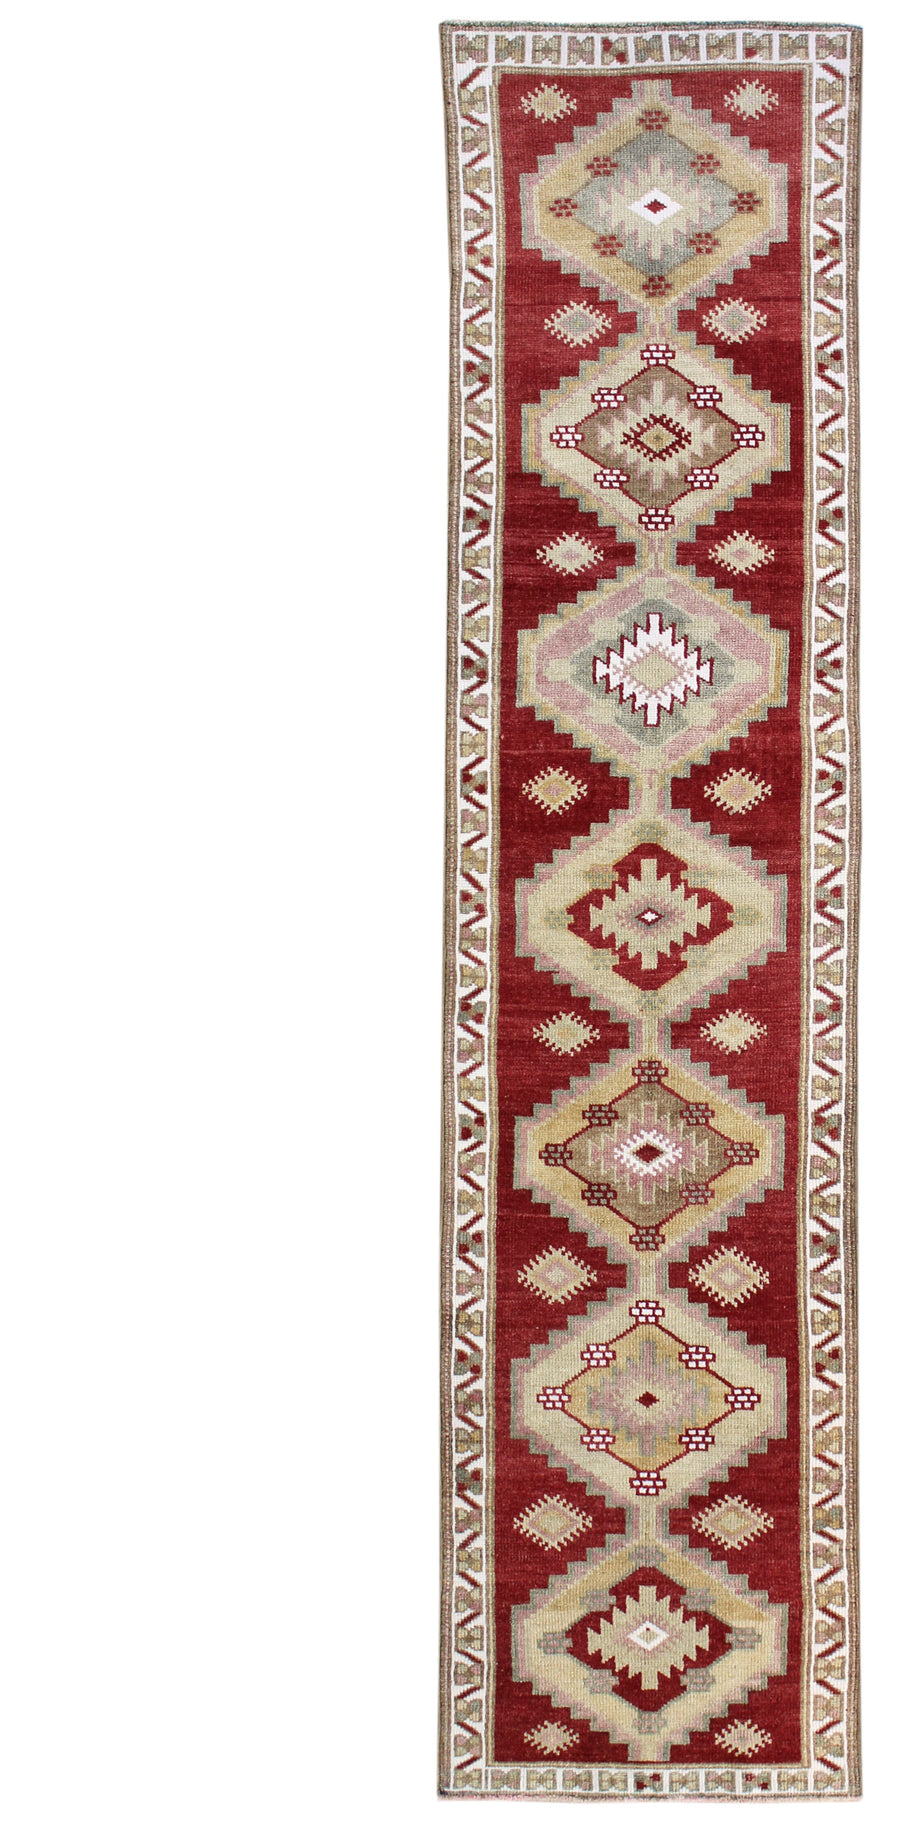 KURDISH HANDKNOTTED RUG, J54109